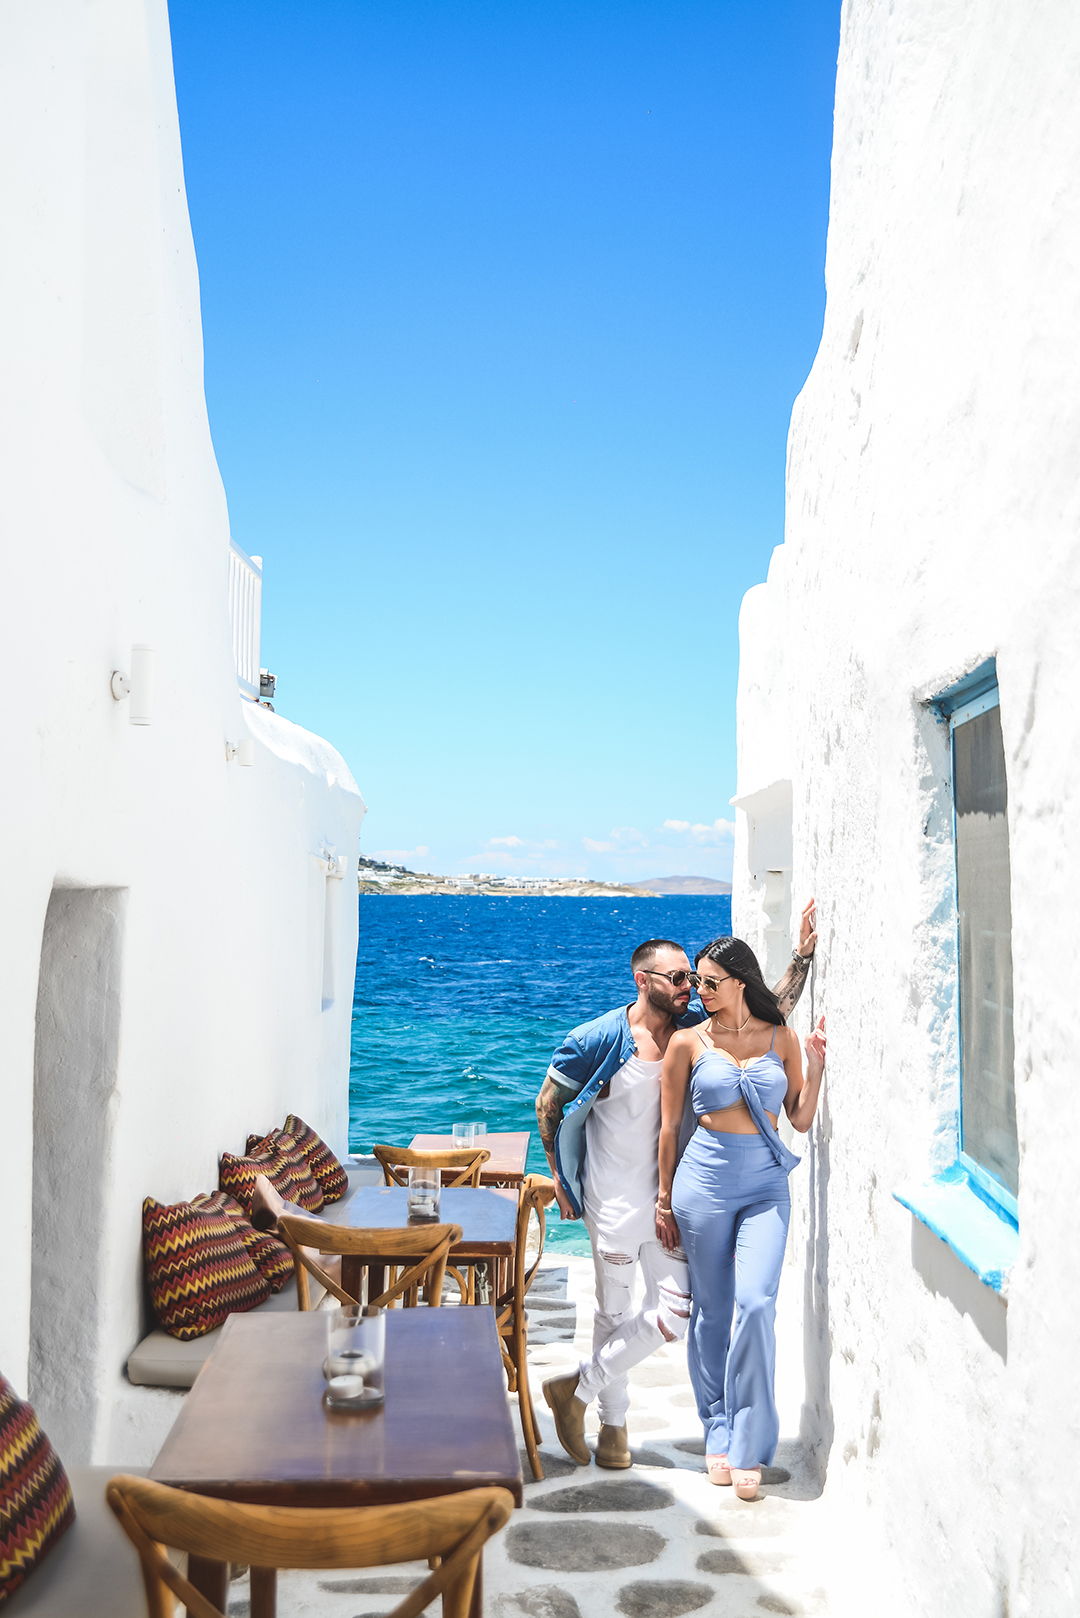 mykonos photographer couple blogger #mykonosphotographer mykonosgreece #mykonosphotography portrait lifestyle #mykonosportrait blogger photographer mykonos magazine #mykonoscouple chora mykonos windmills small streets paraportiani photoshoot